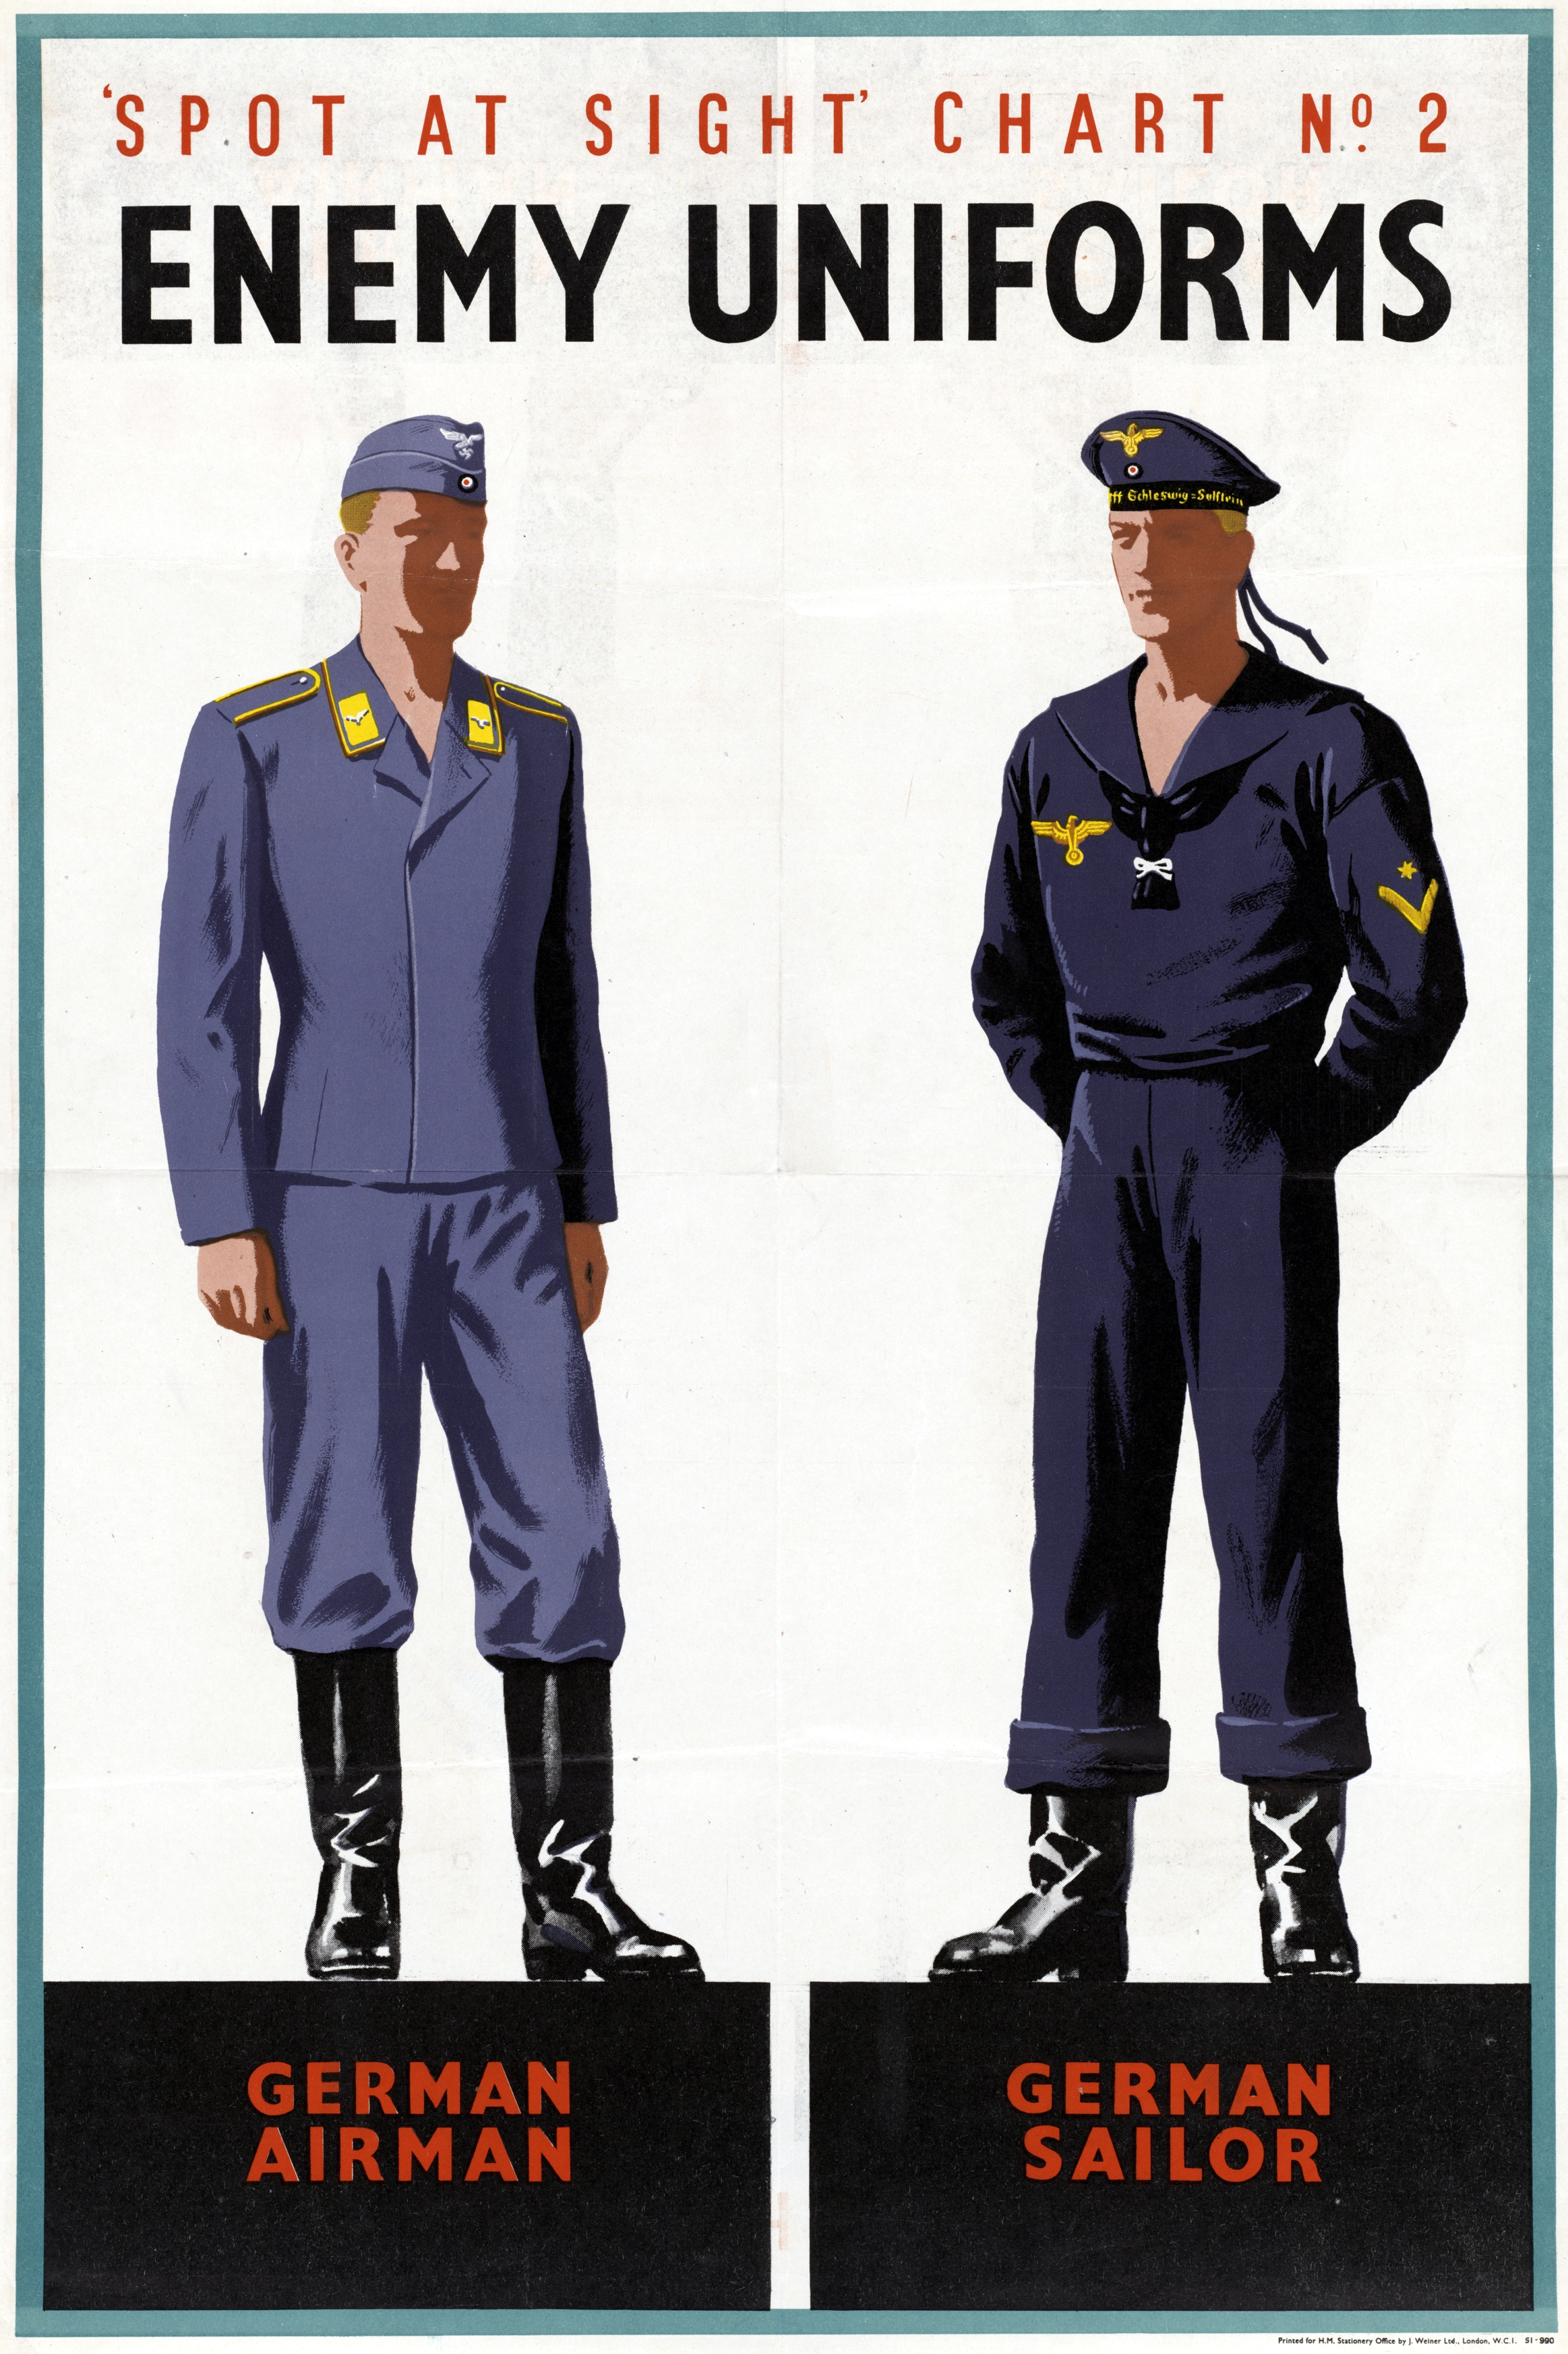 2014 Military Pay Chart: Spot at Sight Chart Number Two - Enemy Uniforms Art ,Chart